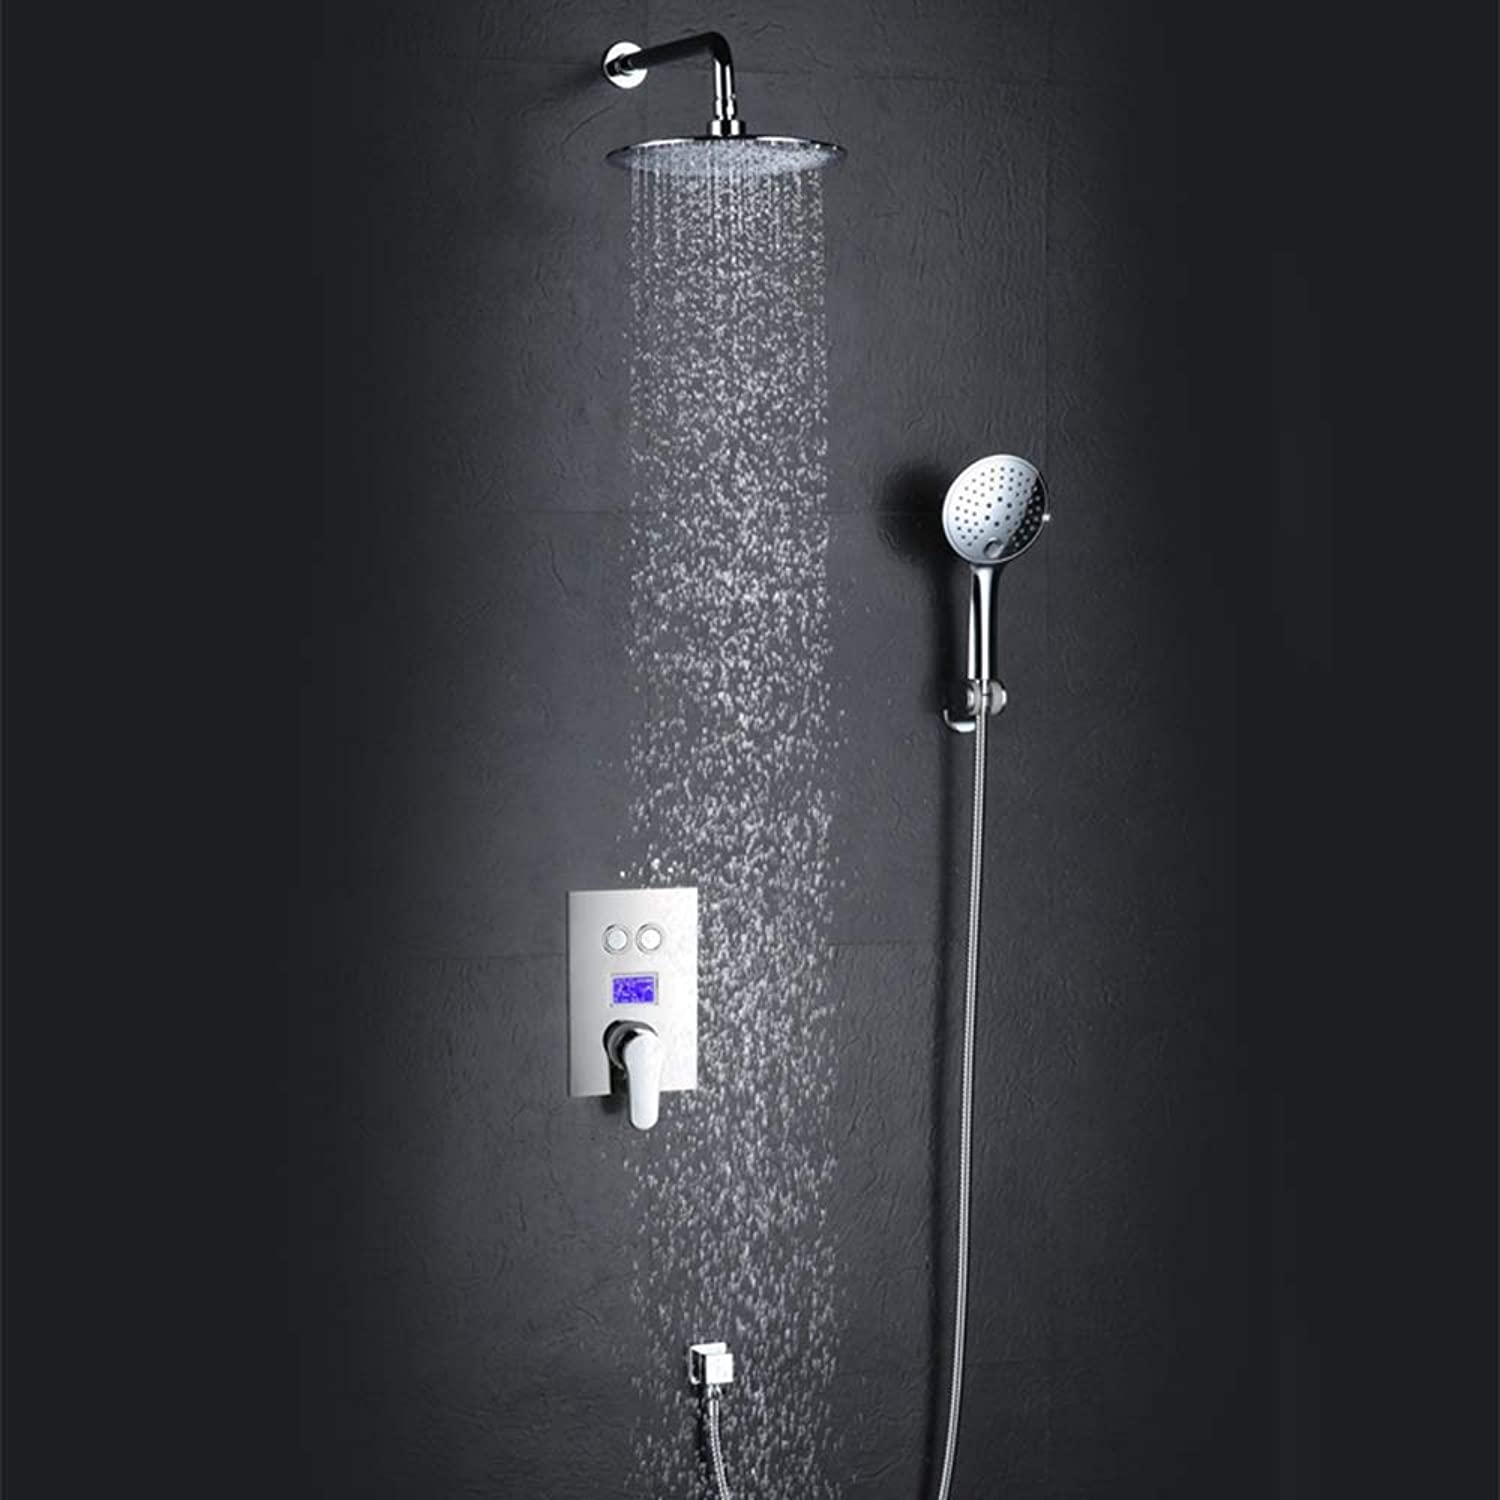 ZXF Hot UP-Duschset Wasserkraft Intelligente Digitalanzeige Anti-Hot-Duschset Badezimmer Baden